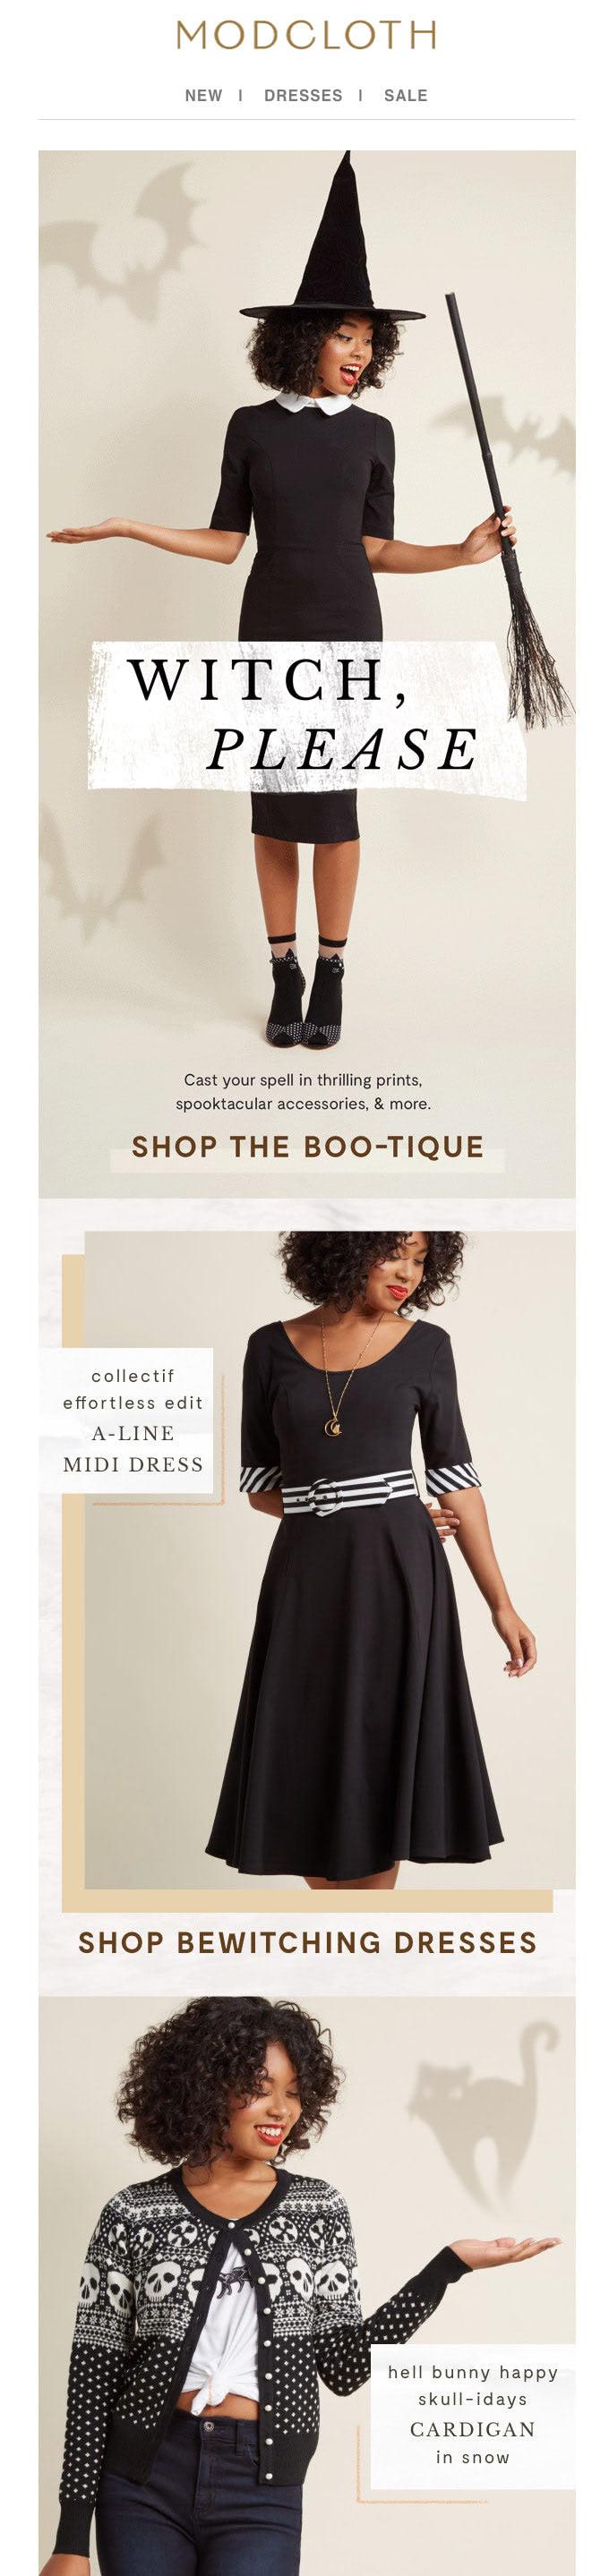 Halloween newsletter from ModCloth